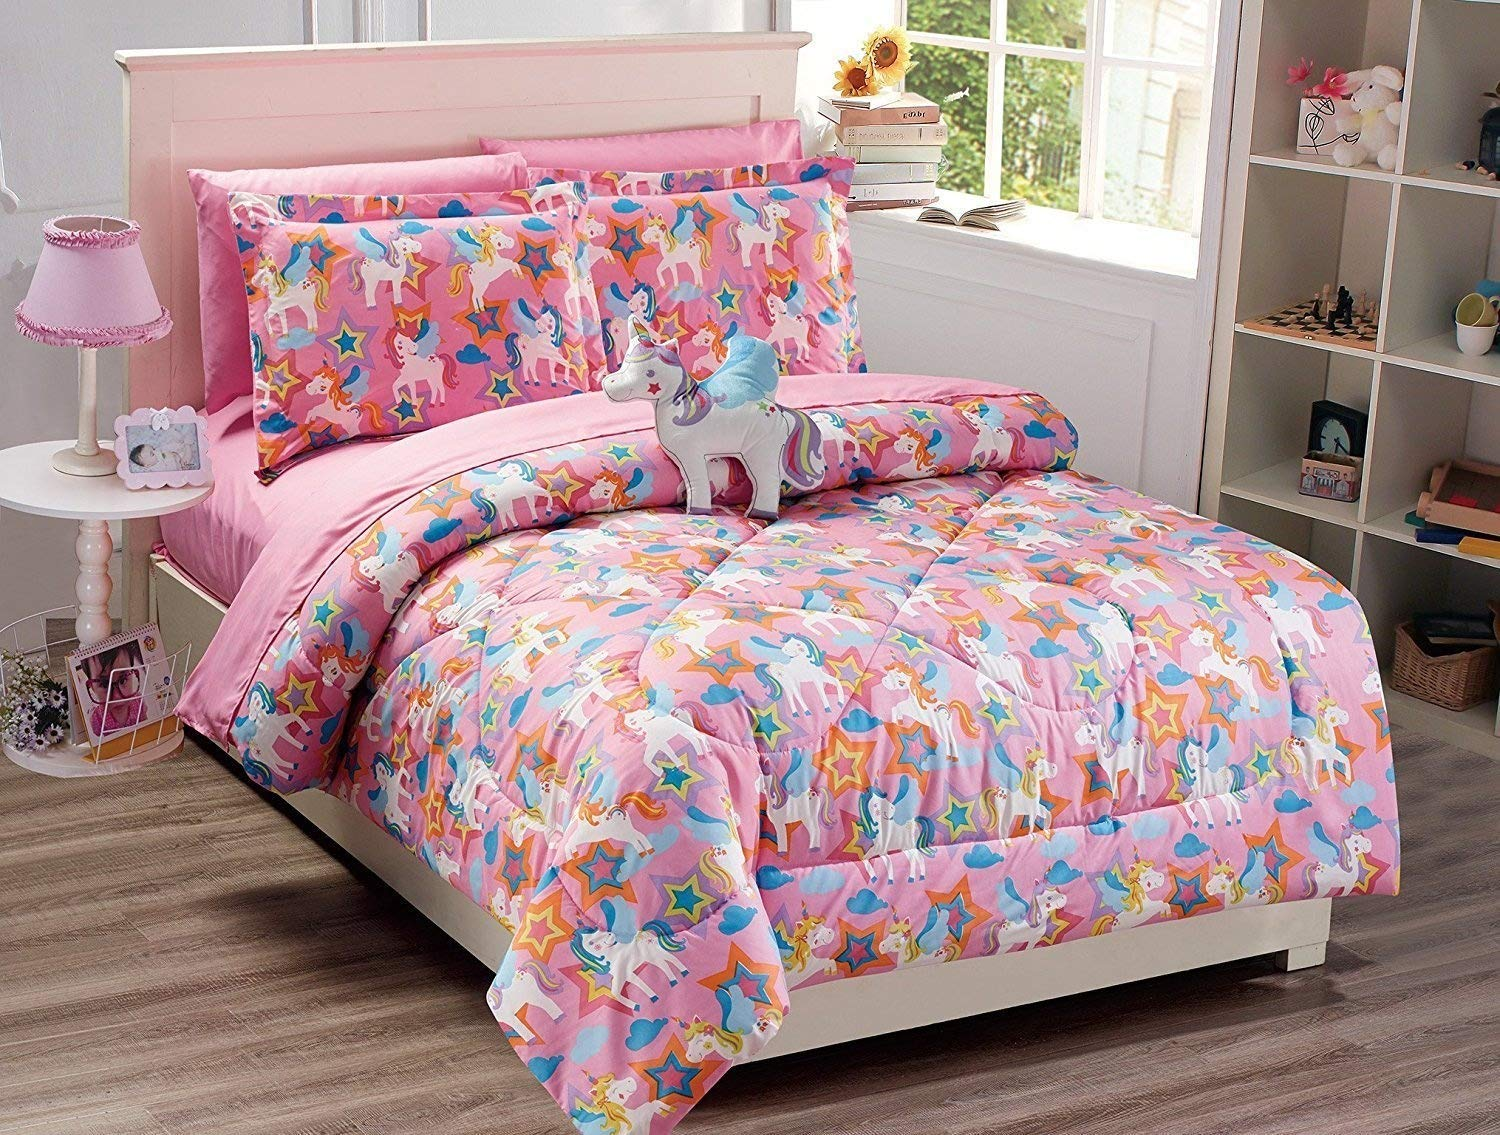 Fancy Collection 8pc Queen Comforter Set Unicorn Pink Purple Blue Orange White with Furry Pillow New